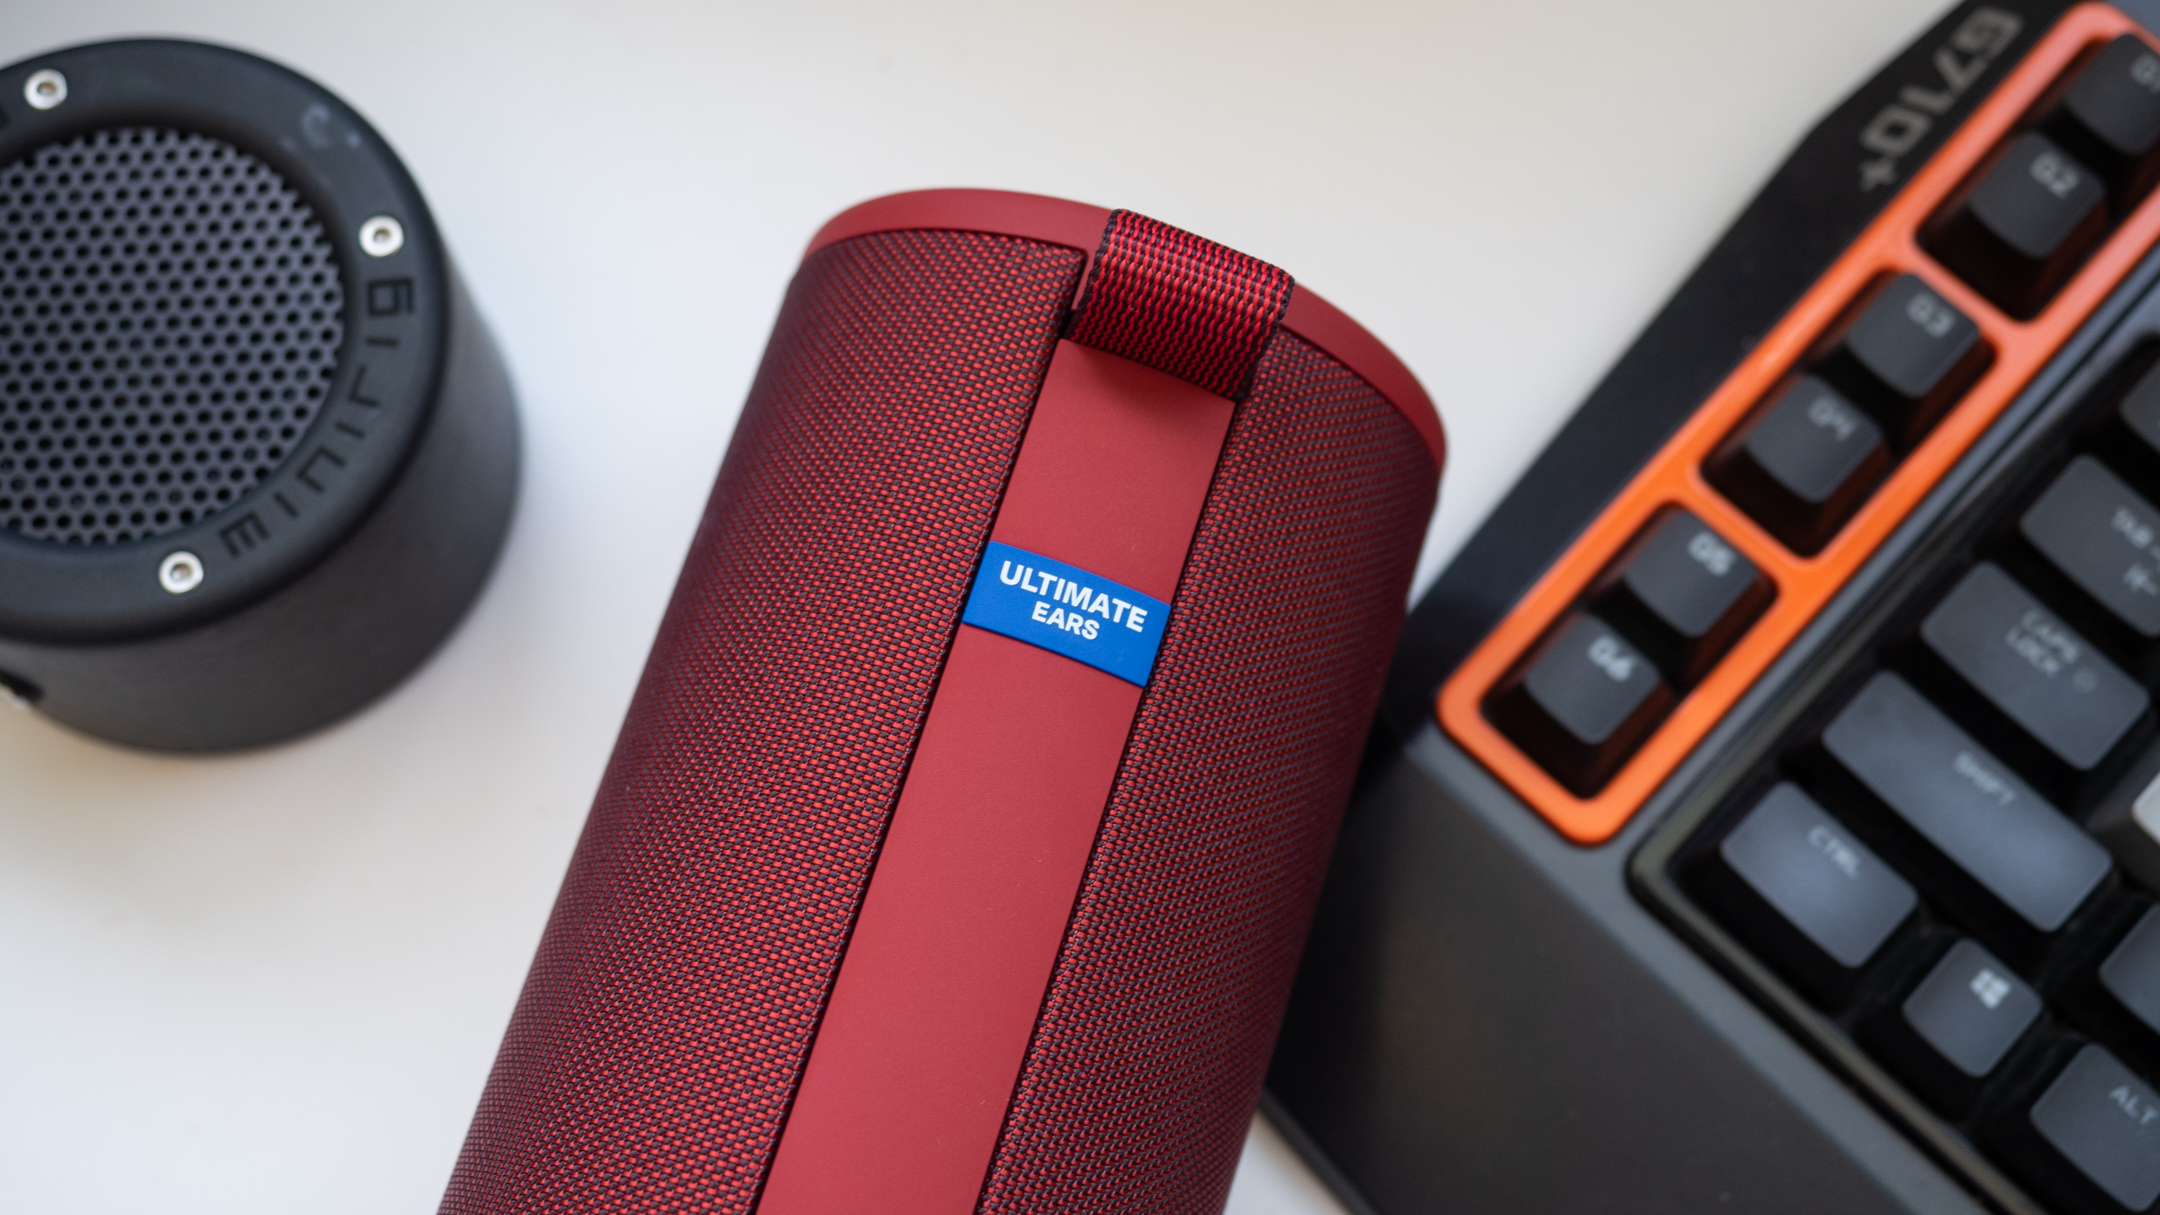 Best Bluetooth speakers 2019: portable speakers for any budget